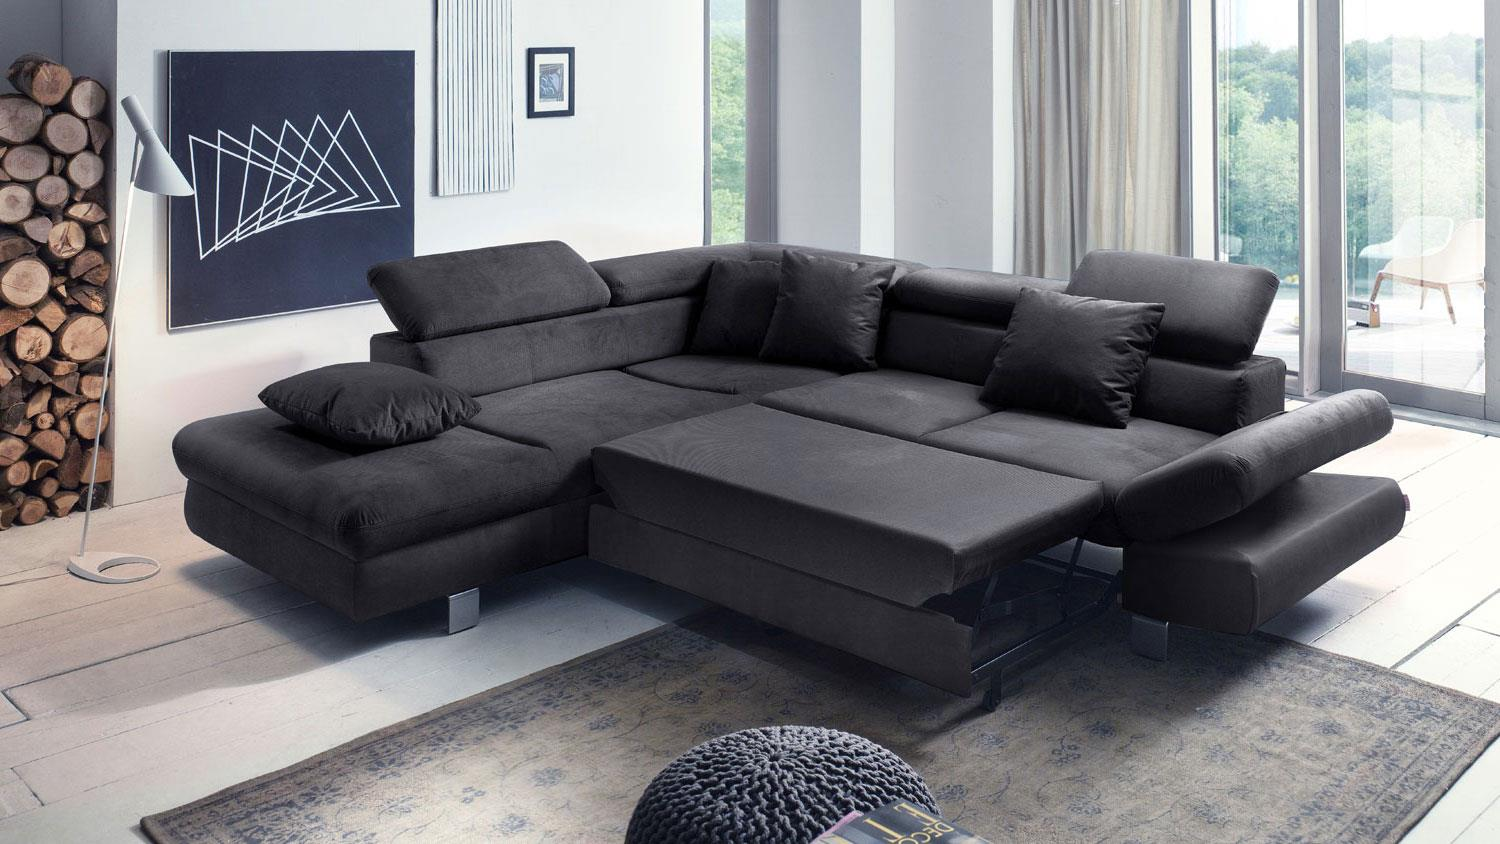 ecksofa sun sofa schwarz mit funktion und kissen 236x260. Black Bedroom Furniture Sets. Home Design Ideas